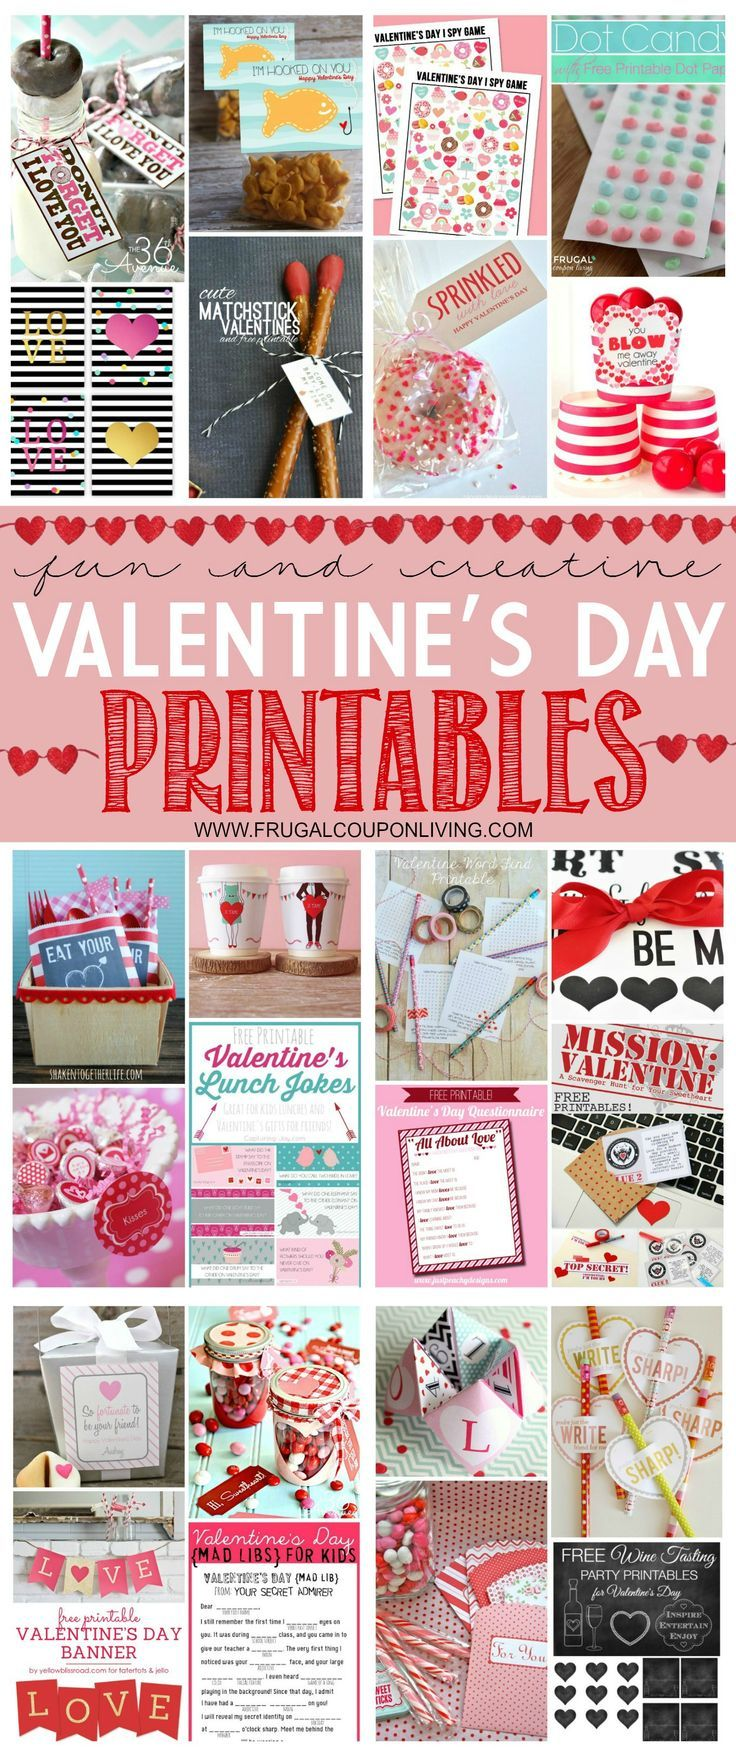 28 Fun and Creative Valentine's Day Printables on Frugal Coupon Living. FREE Valentines, FREE Crafts, FREE Recipes.